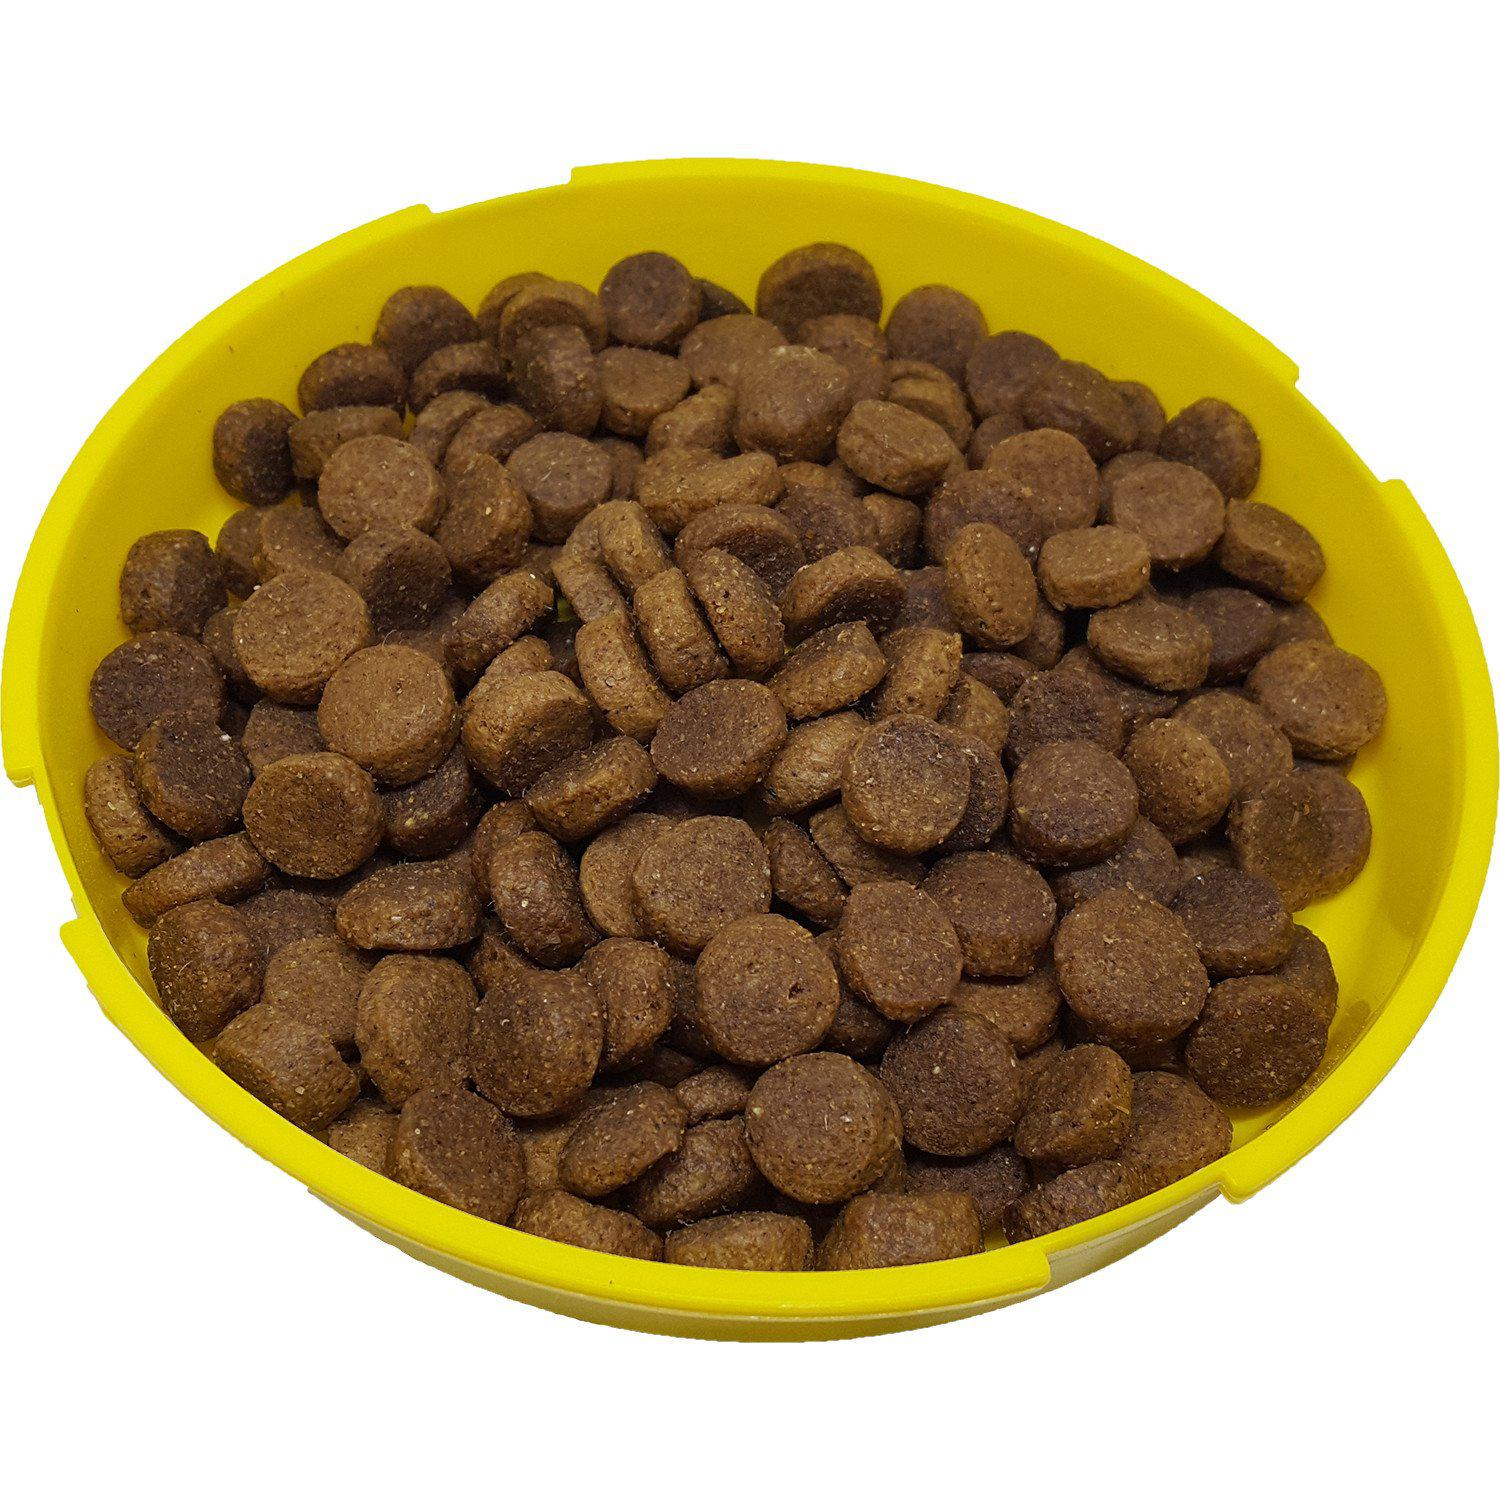 HI-PRO FEEDS® ProForm Kennel Blend (All Stages) Dog Food 18 KG - Critter Country Supply Ltd.